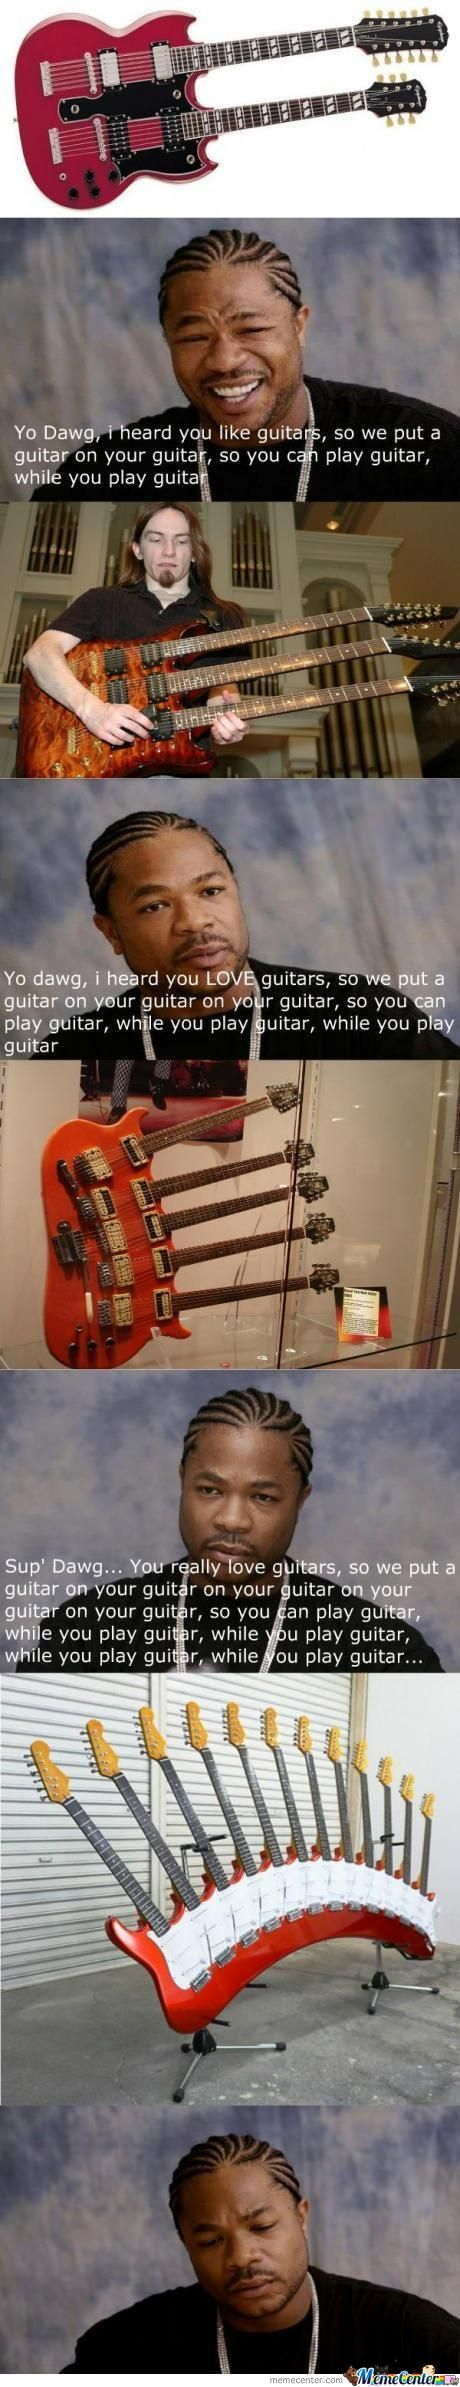 I Heard You Like Guitars